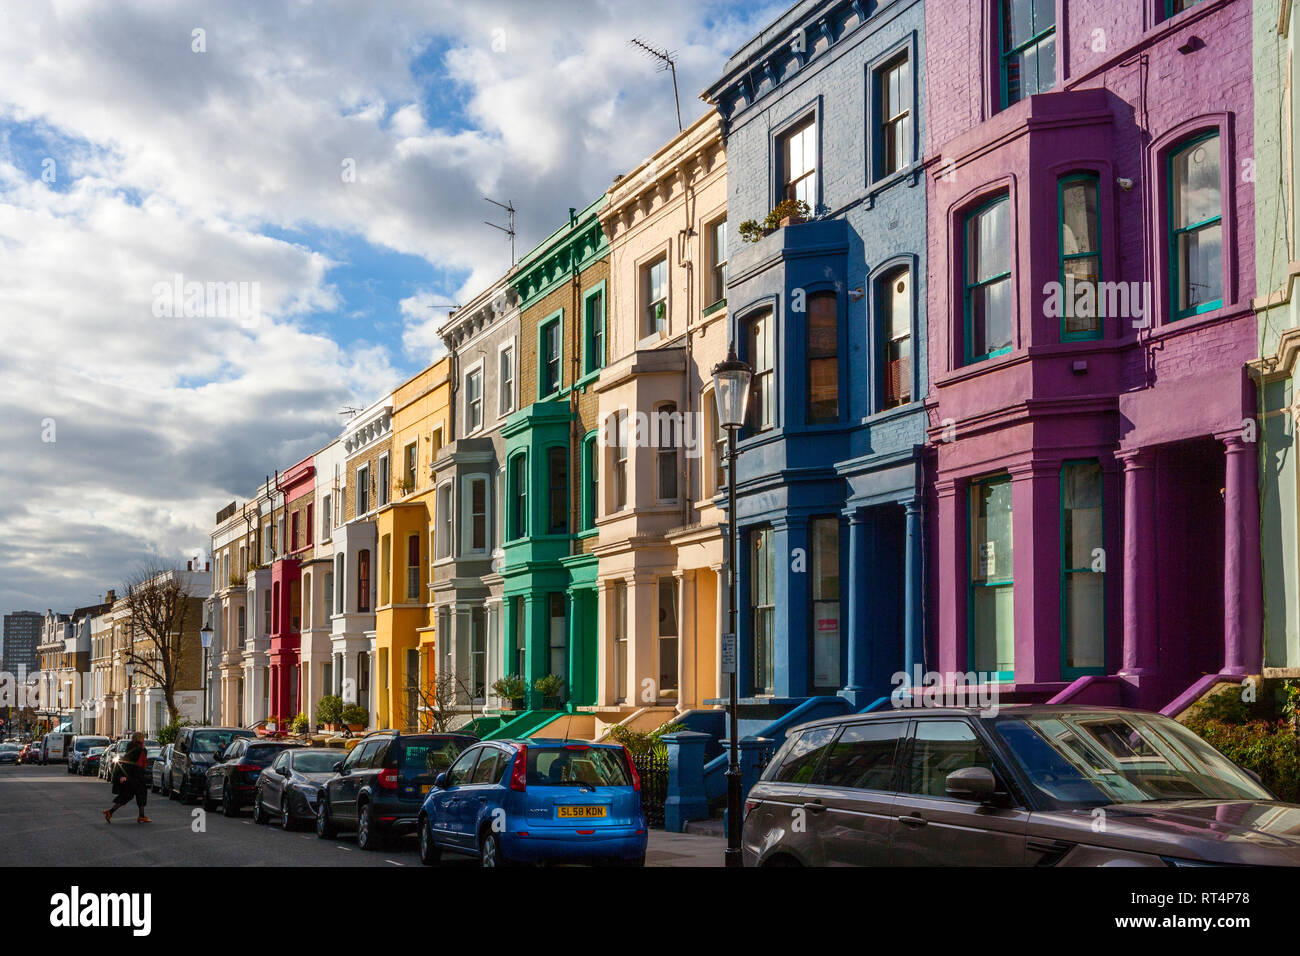 Brightly Painted Houses, Notting Hill, London - Stock Image